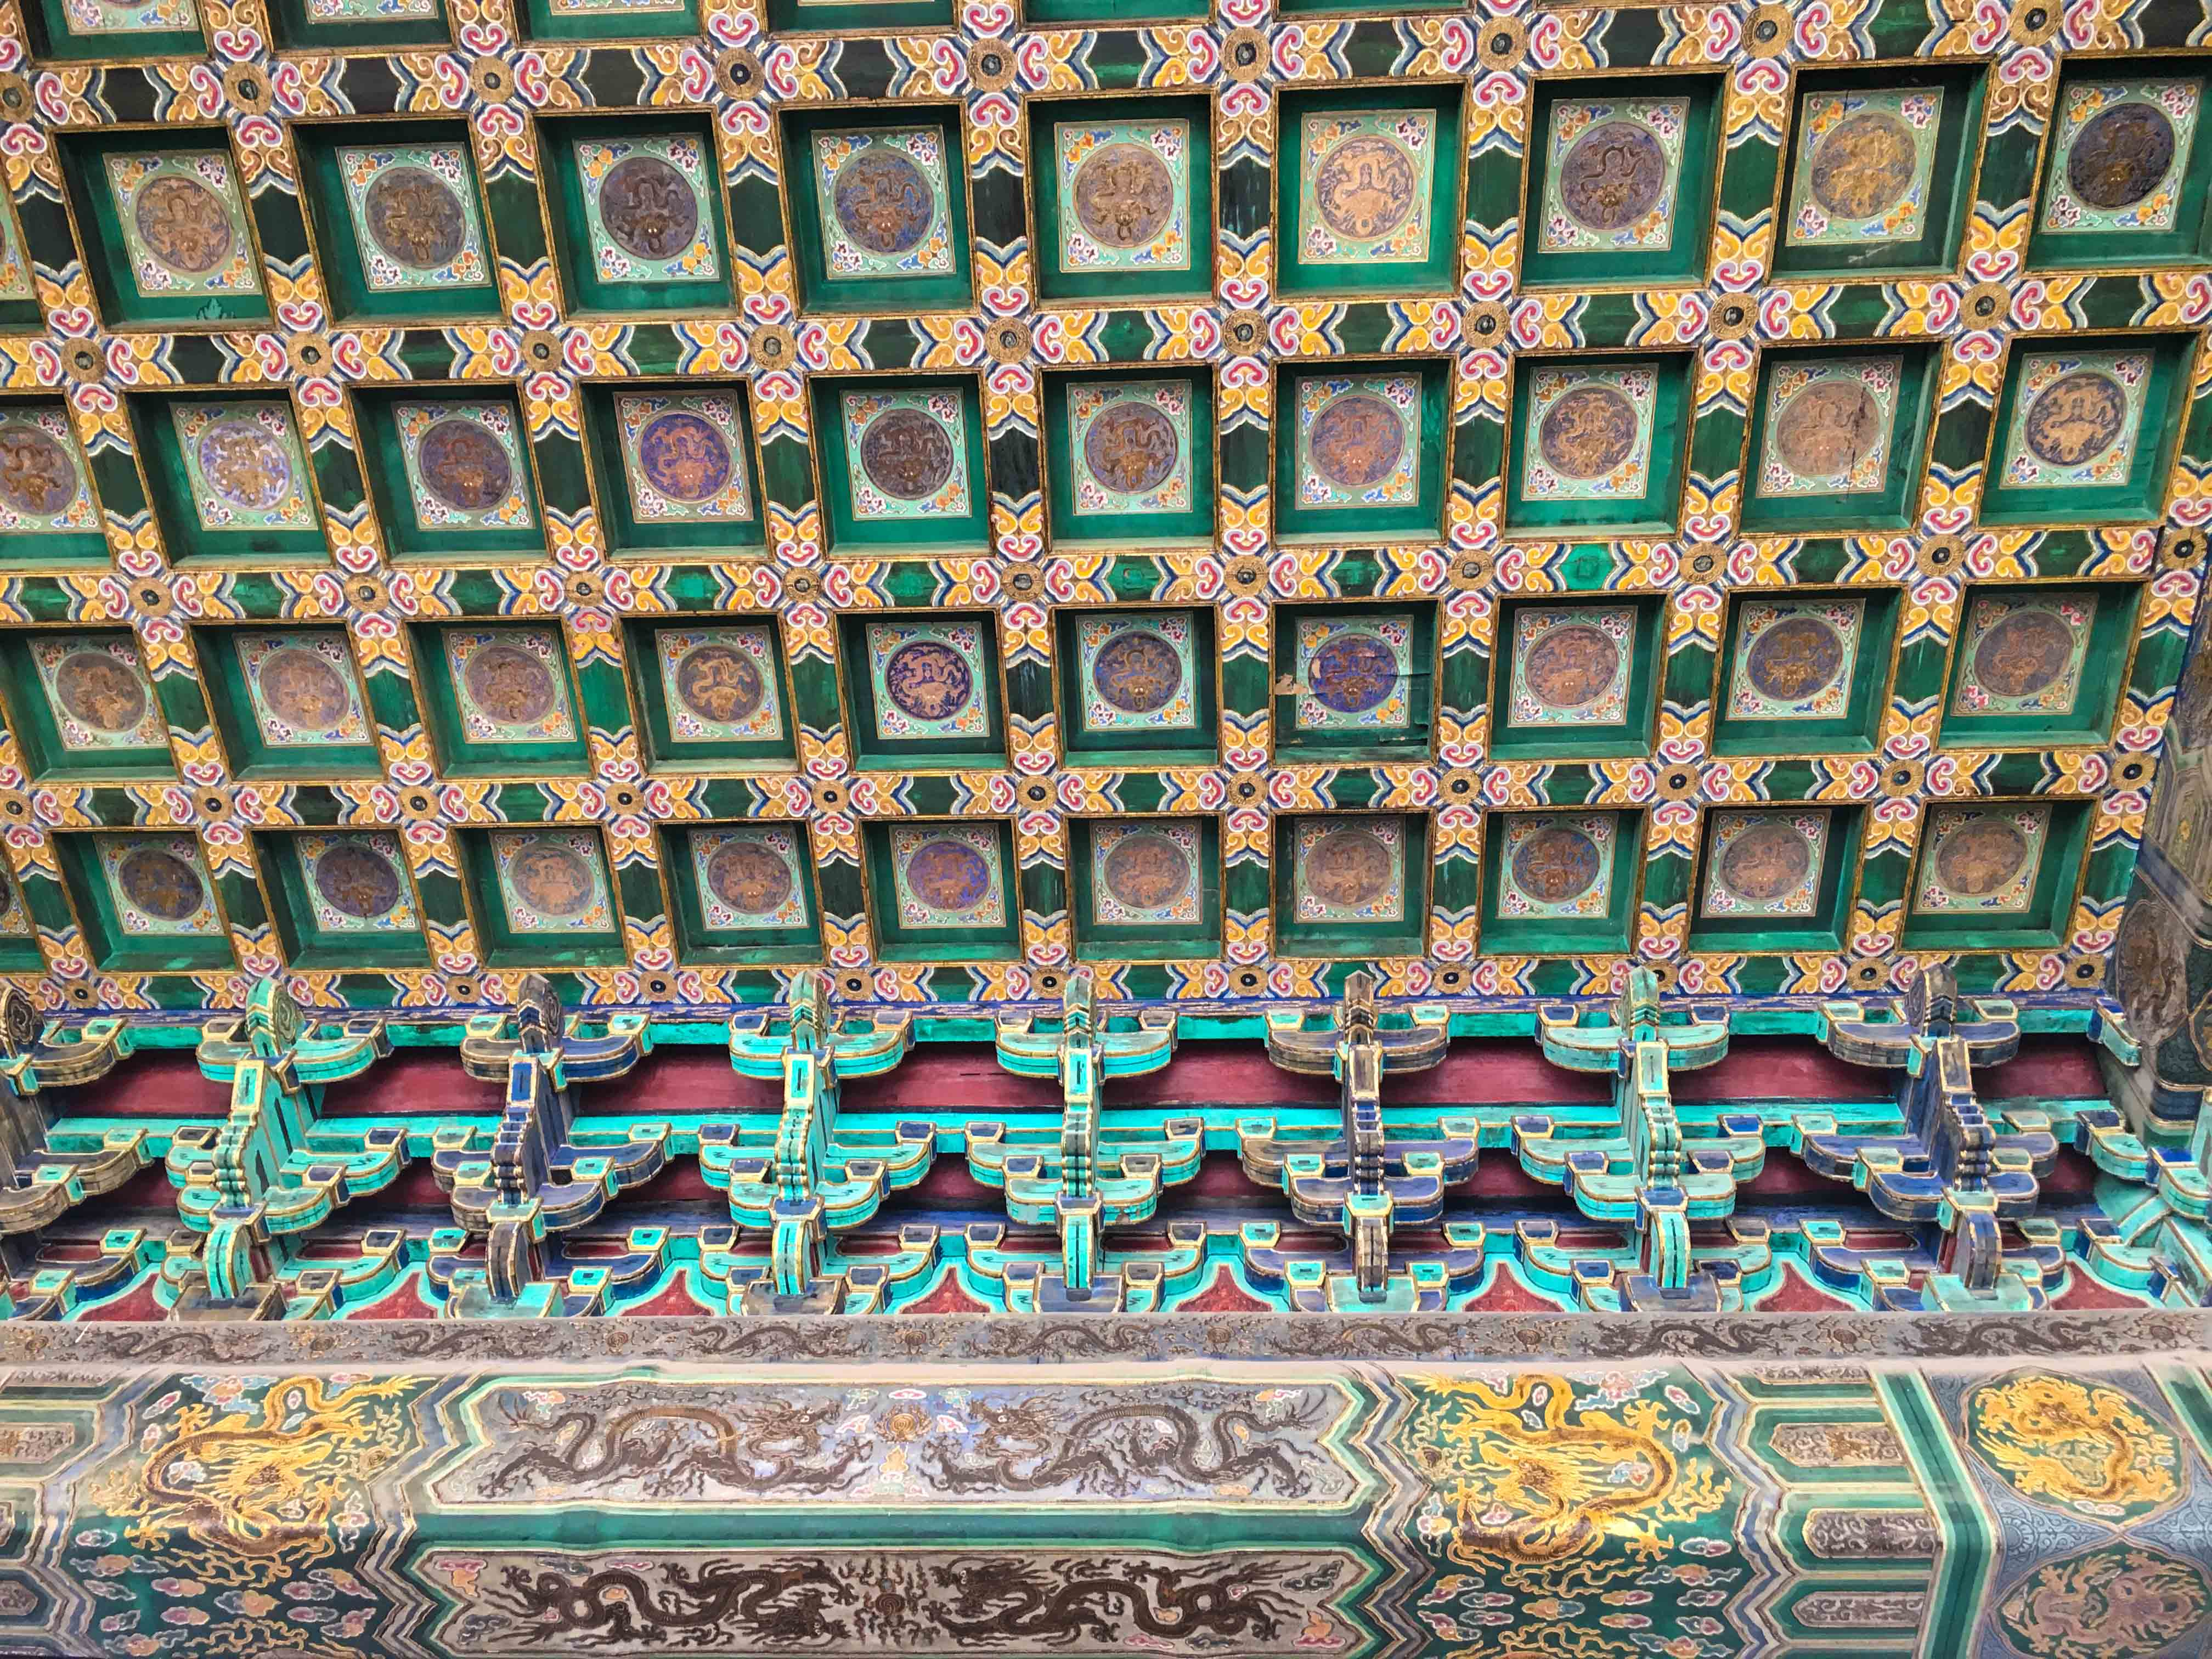 Forbidden city beijing ceiling